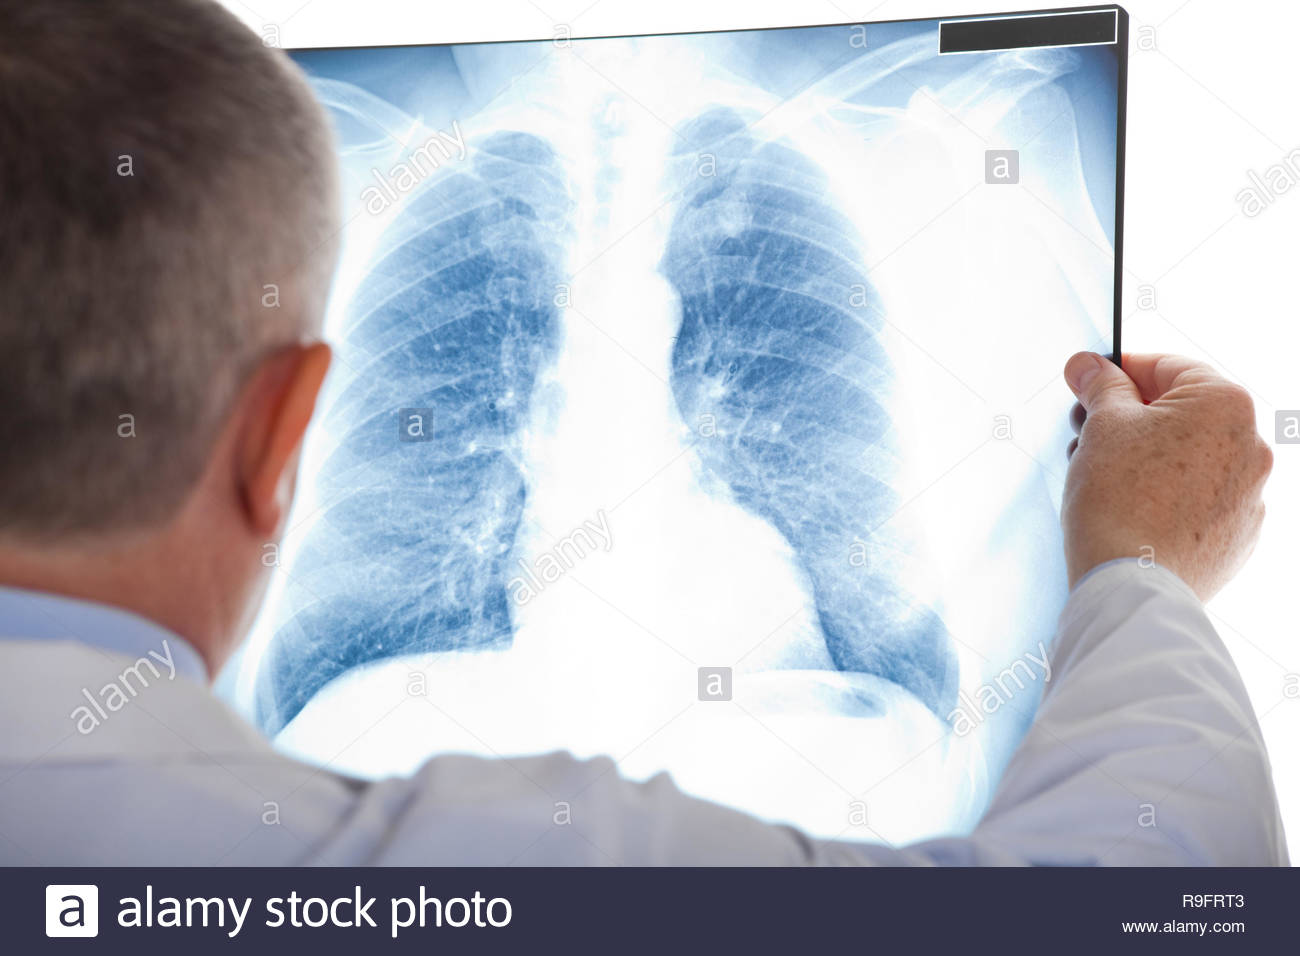 Doctor examining a lung radiography - Stock Image